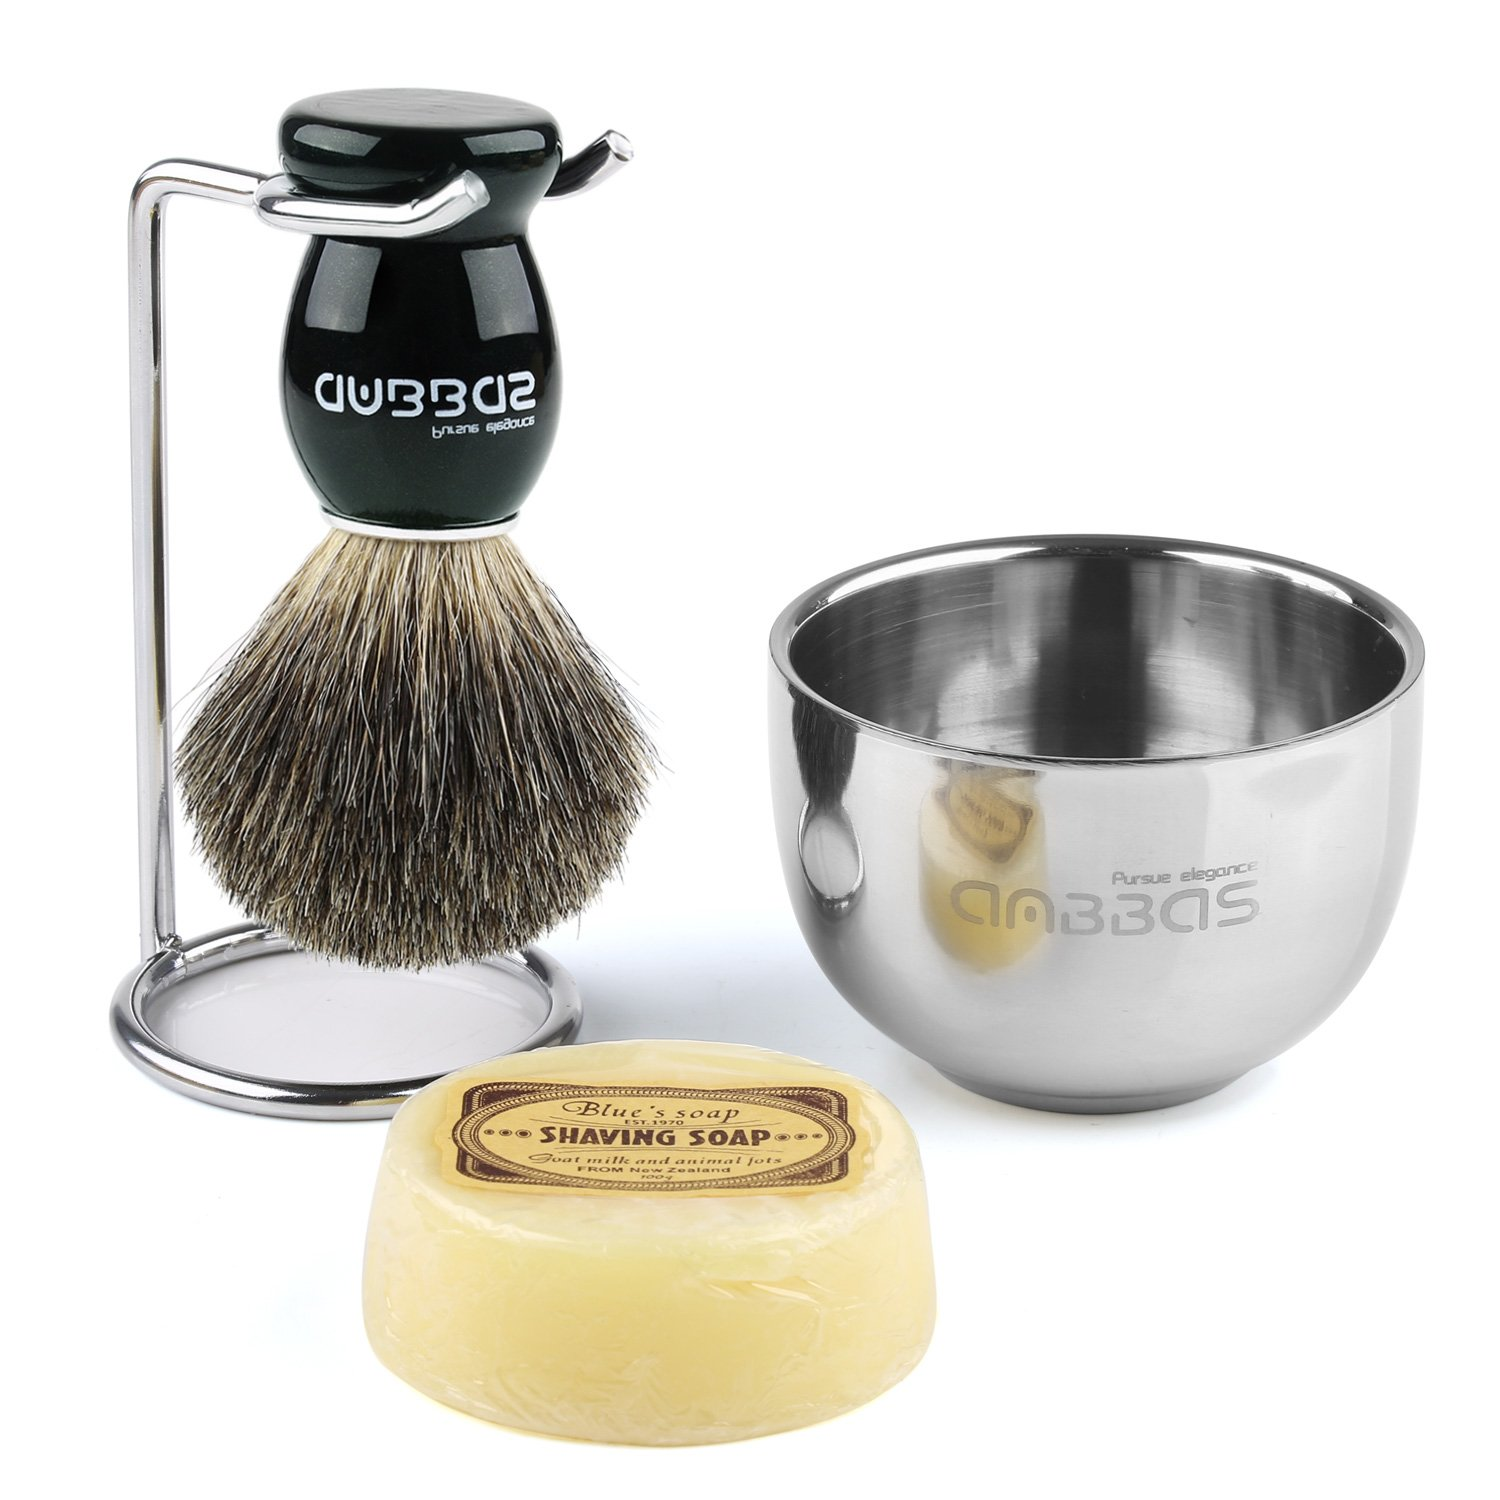 Shaving Set, 4in1 Anbbas Men Fine Badger Bristle Shave Brush Black Wood Handle,Stainless Steel Shaving Stand and Soap Cup with Shaving Soap Bar Natural & Organic for Perfect Wet Shaving